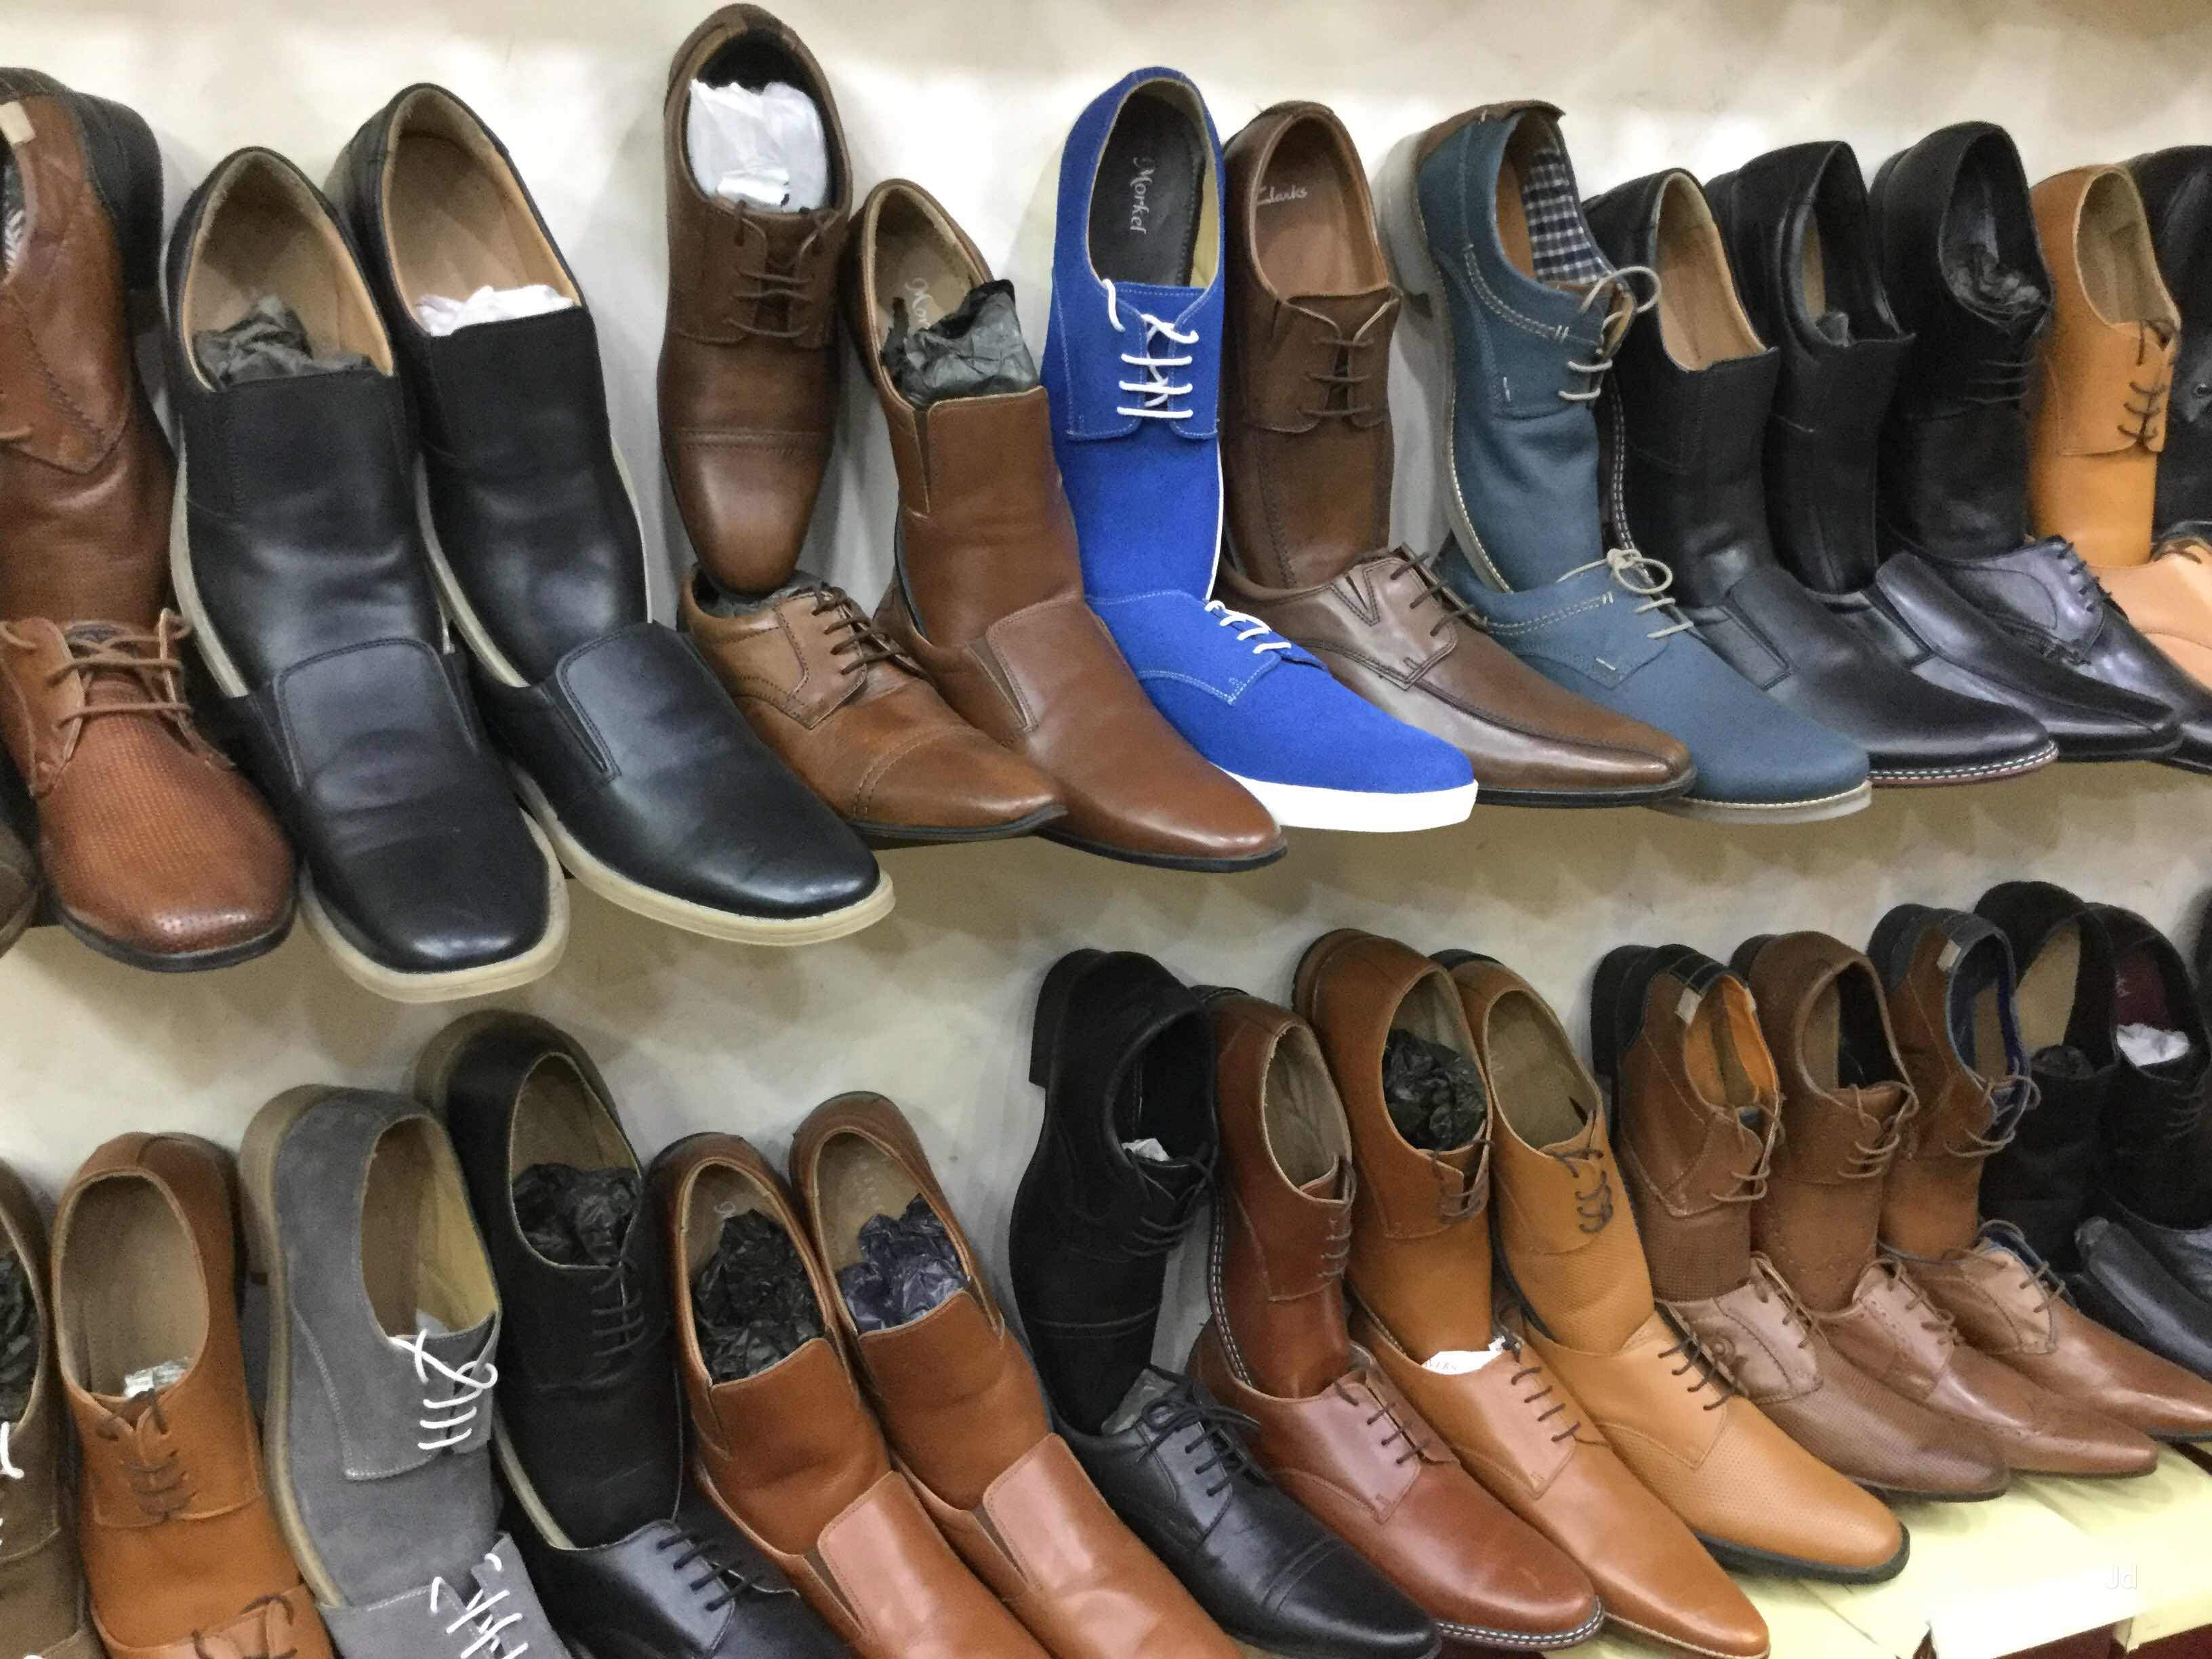 SELL GENUINE LEATHER & GENUINE LEATHER PRODUCTS